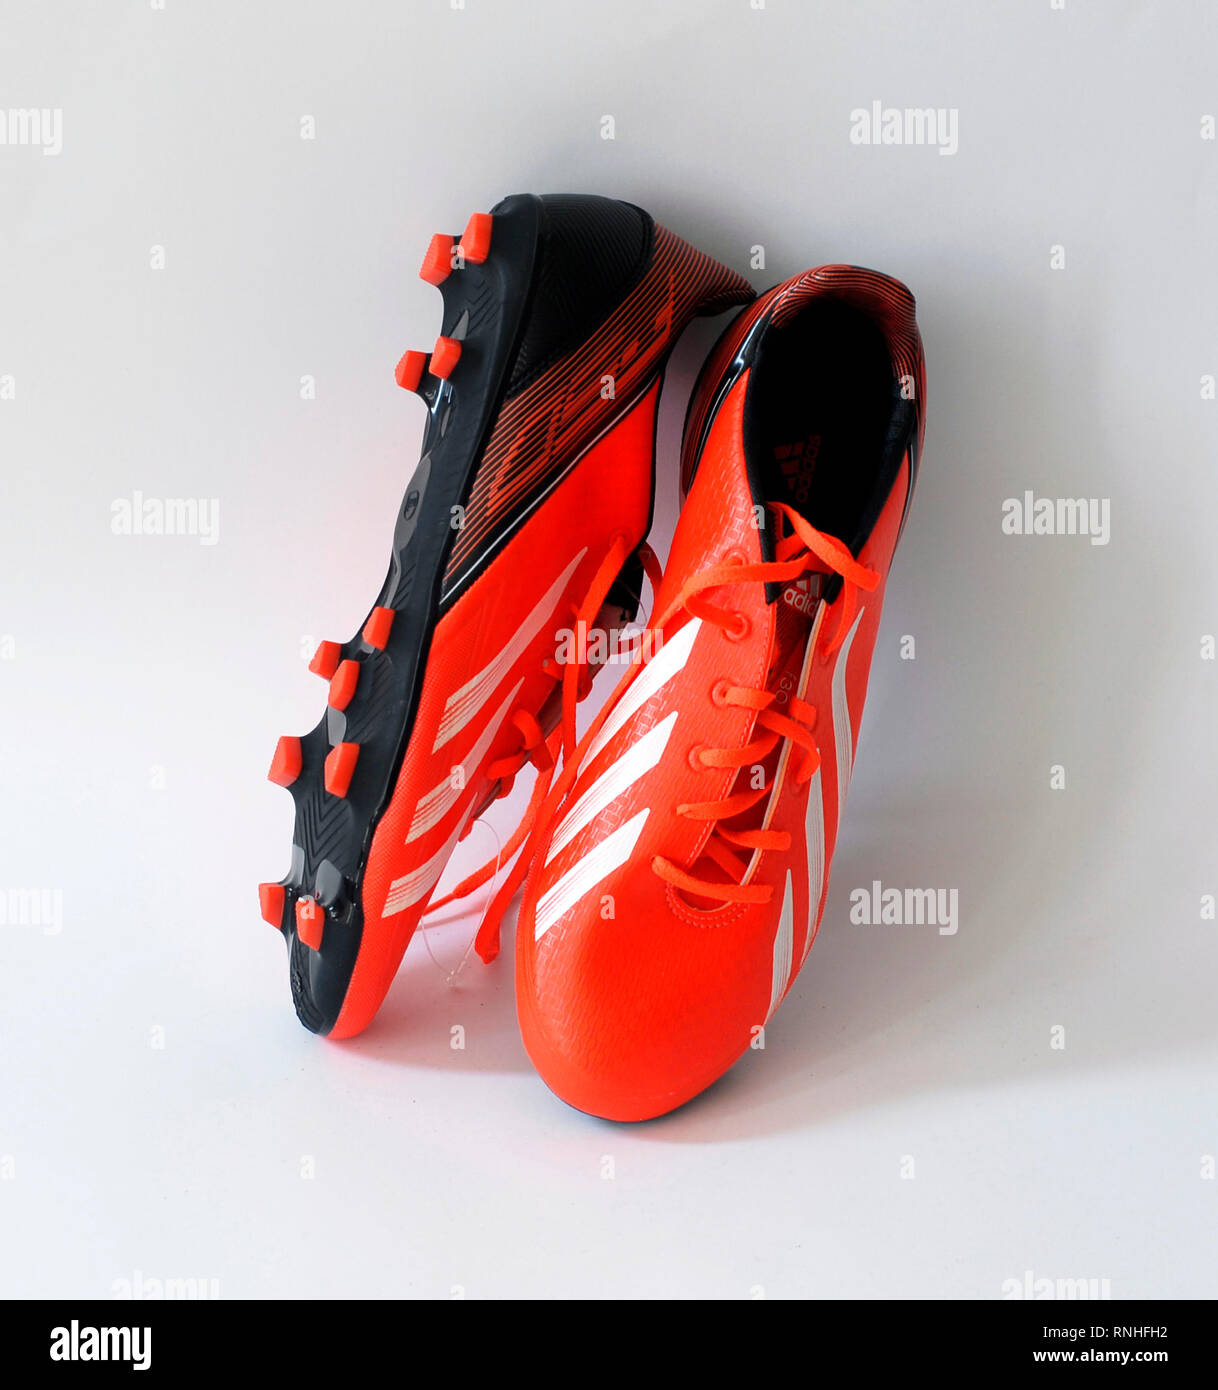 Chaussures De InfrarougeEn Adidas Football couleur Orange F30 Fait fg7b6yYv